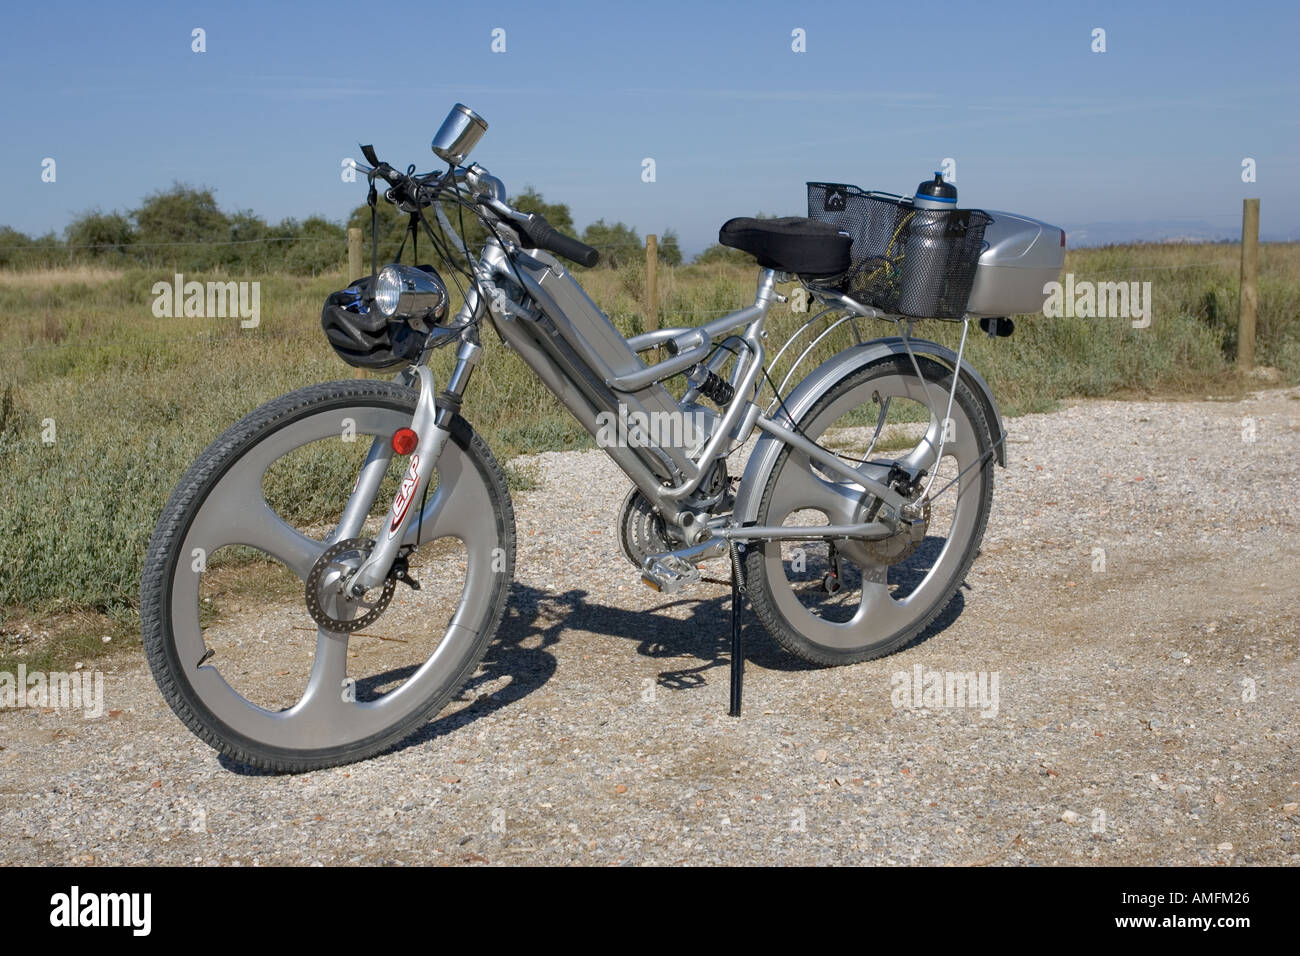 Electric Bicycle Stock Photos Amp Electric Bicycle Stock